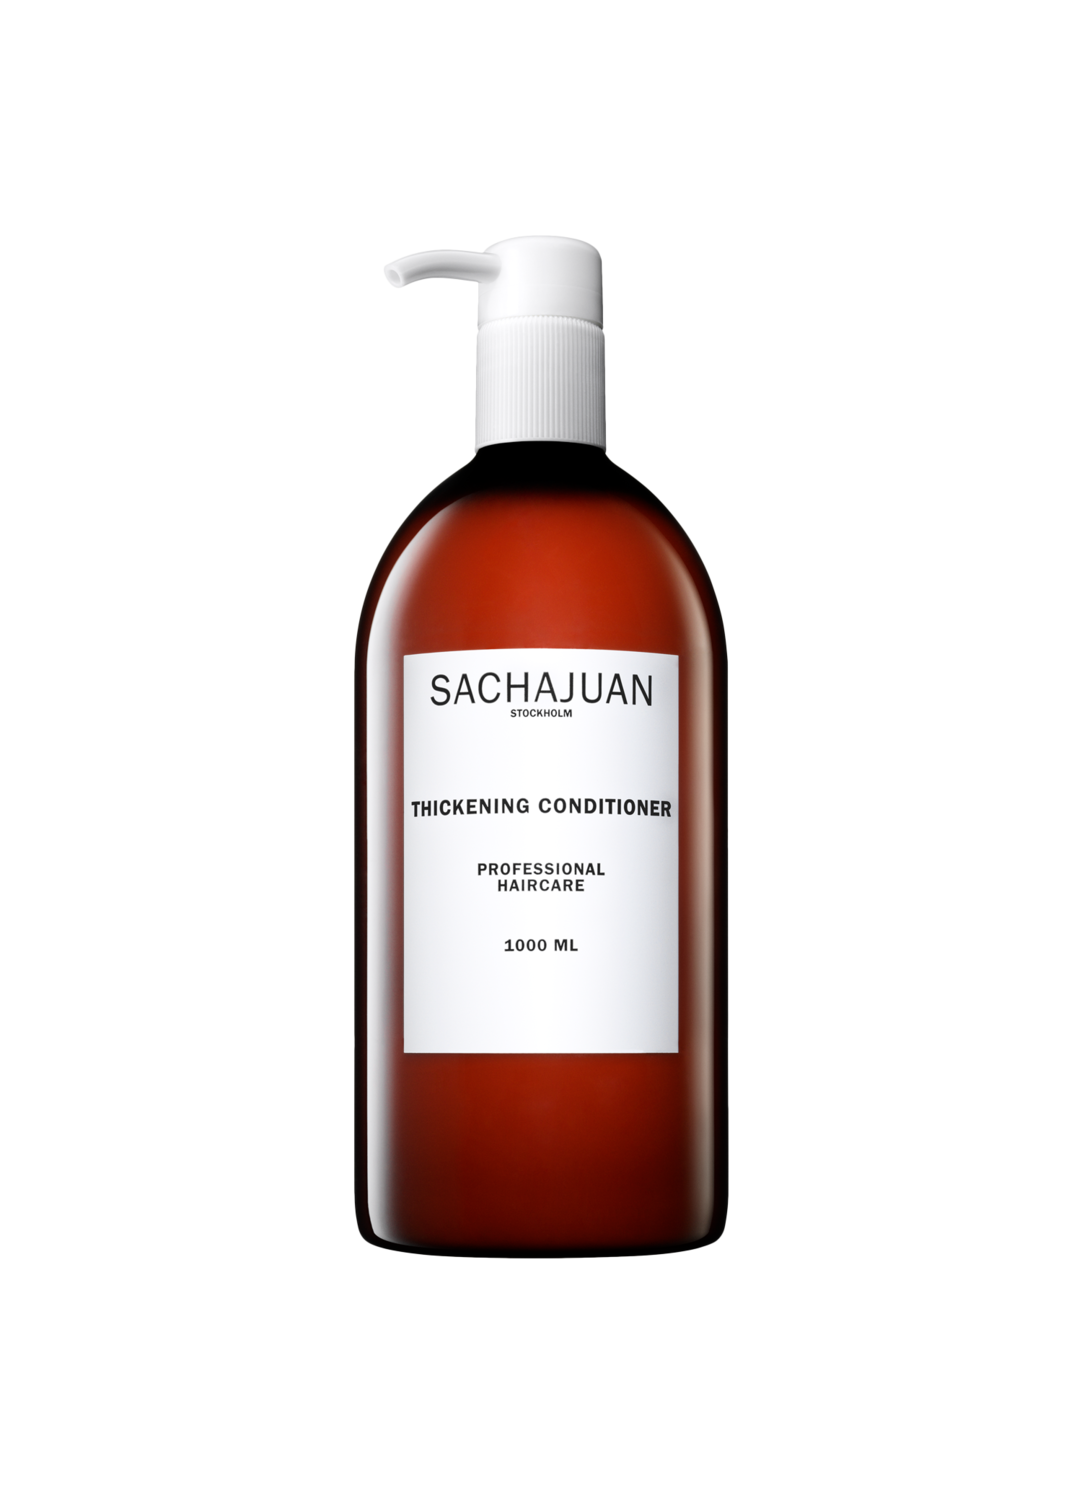 sachajuan | thickening conditioner[product_type ]sachajuan - Kiss and Makeup